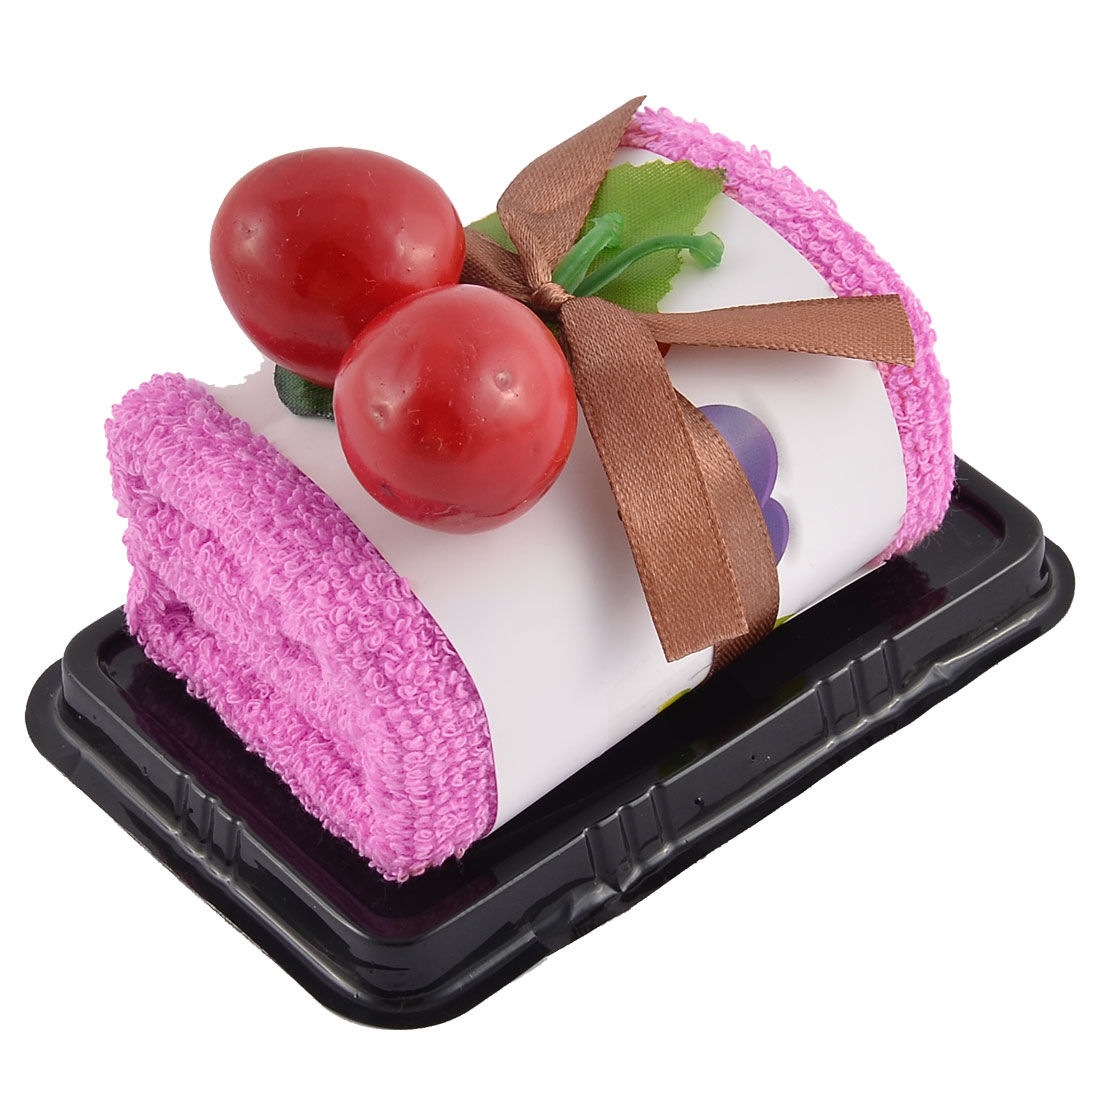 Plastic Simulated Cherry Decor Square Roll Cake Towel Gift Ornament Fuchsia